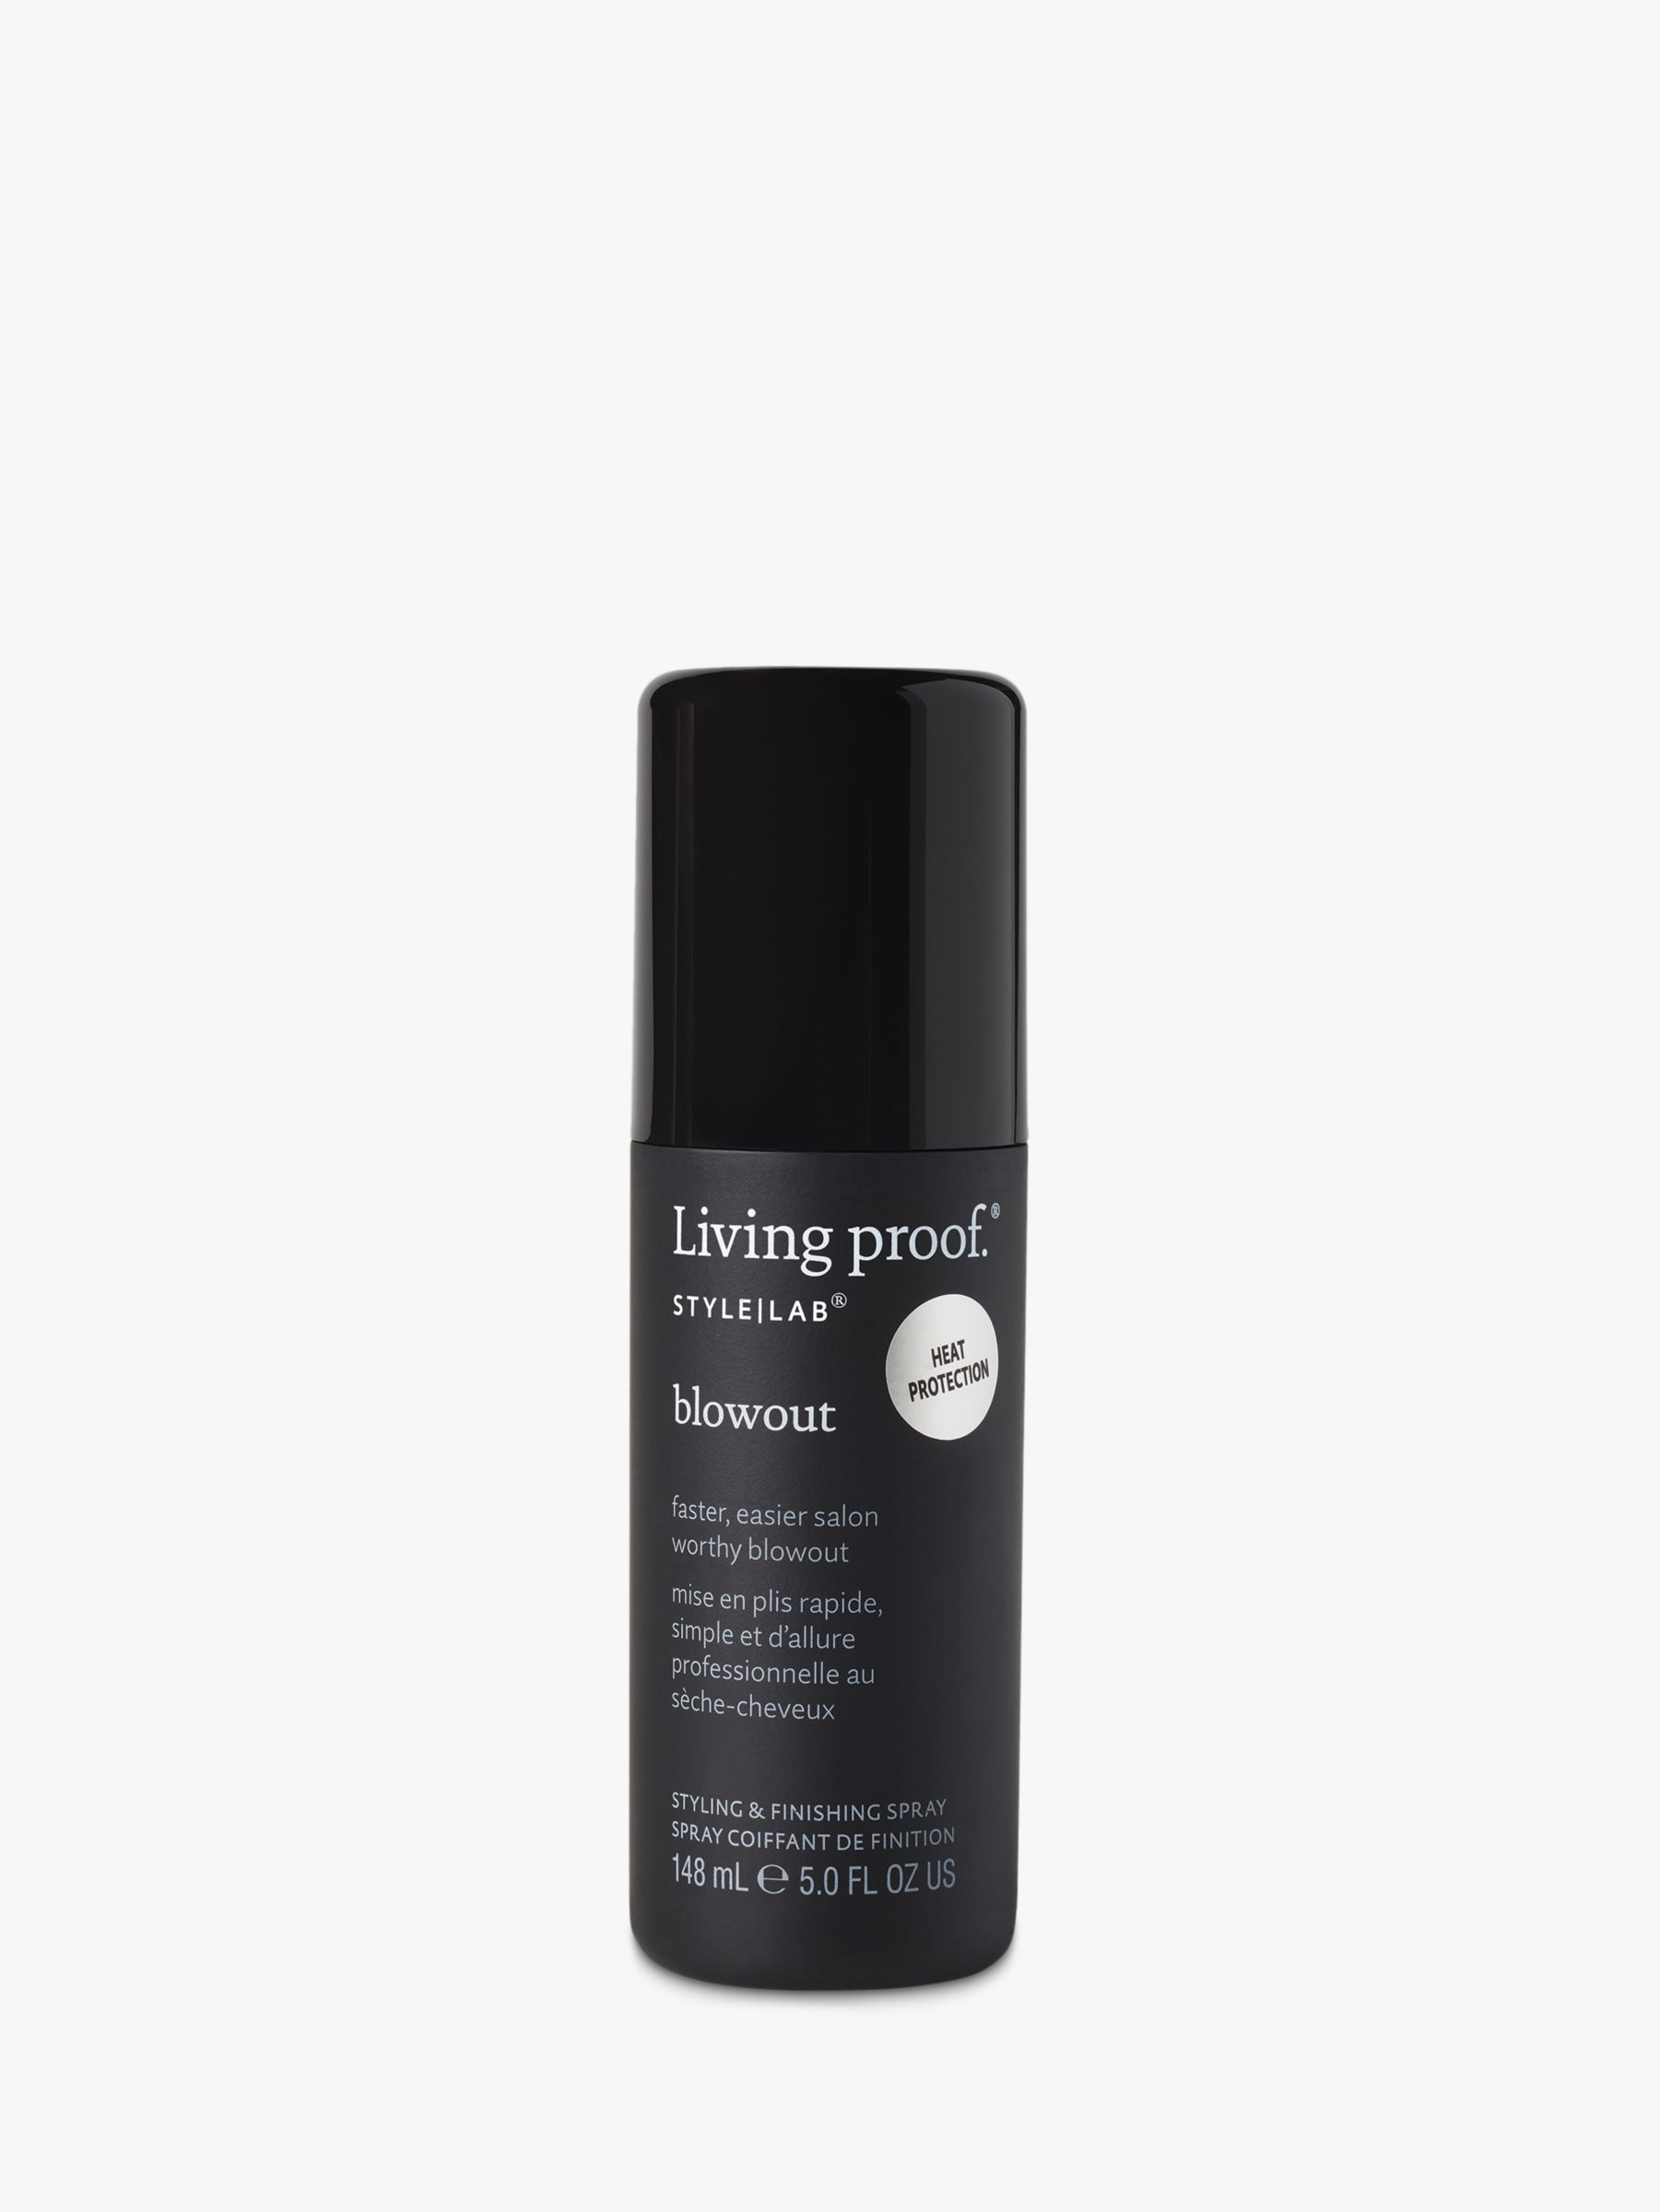 Living Proof Living Proof Blowout Styling & Finishing Spray, 148ml